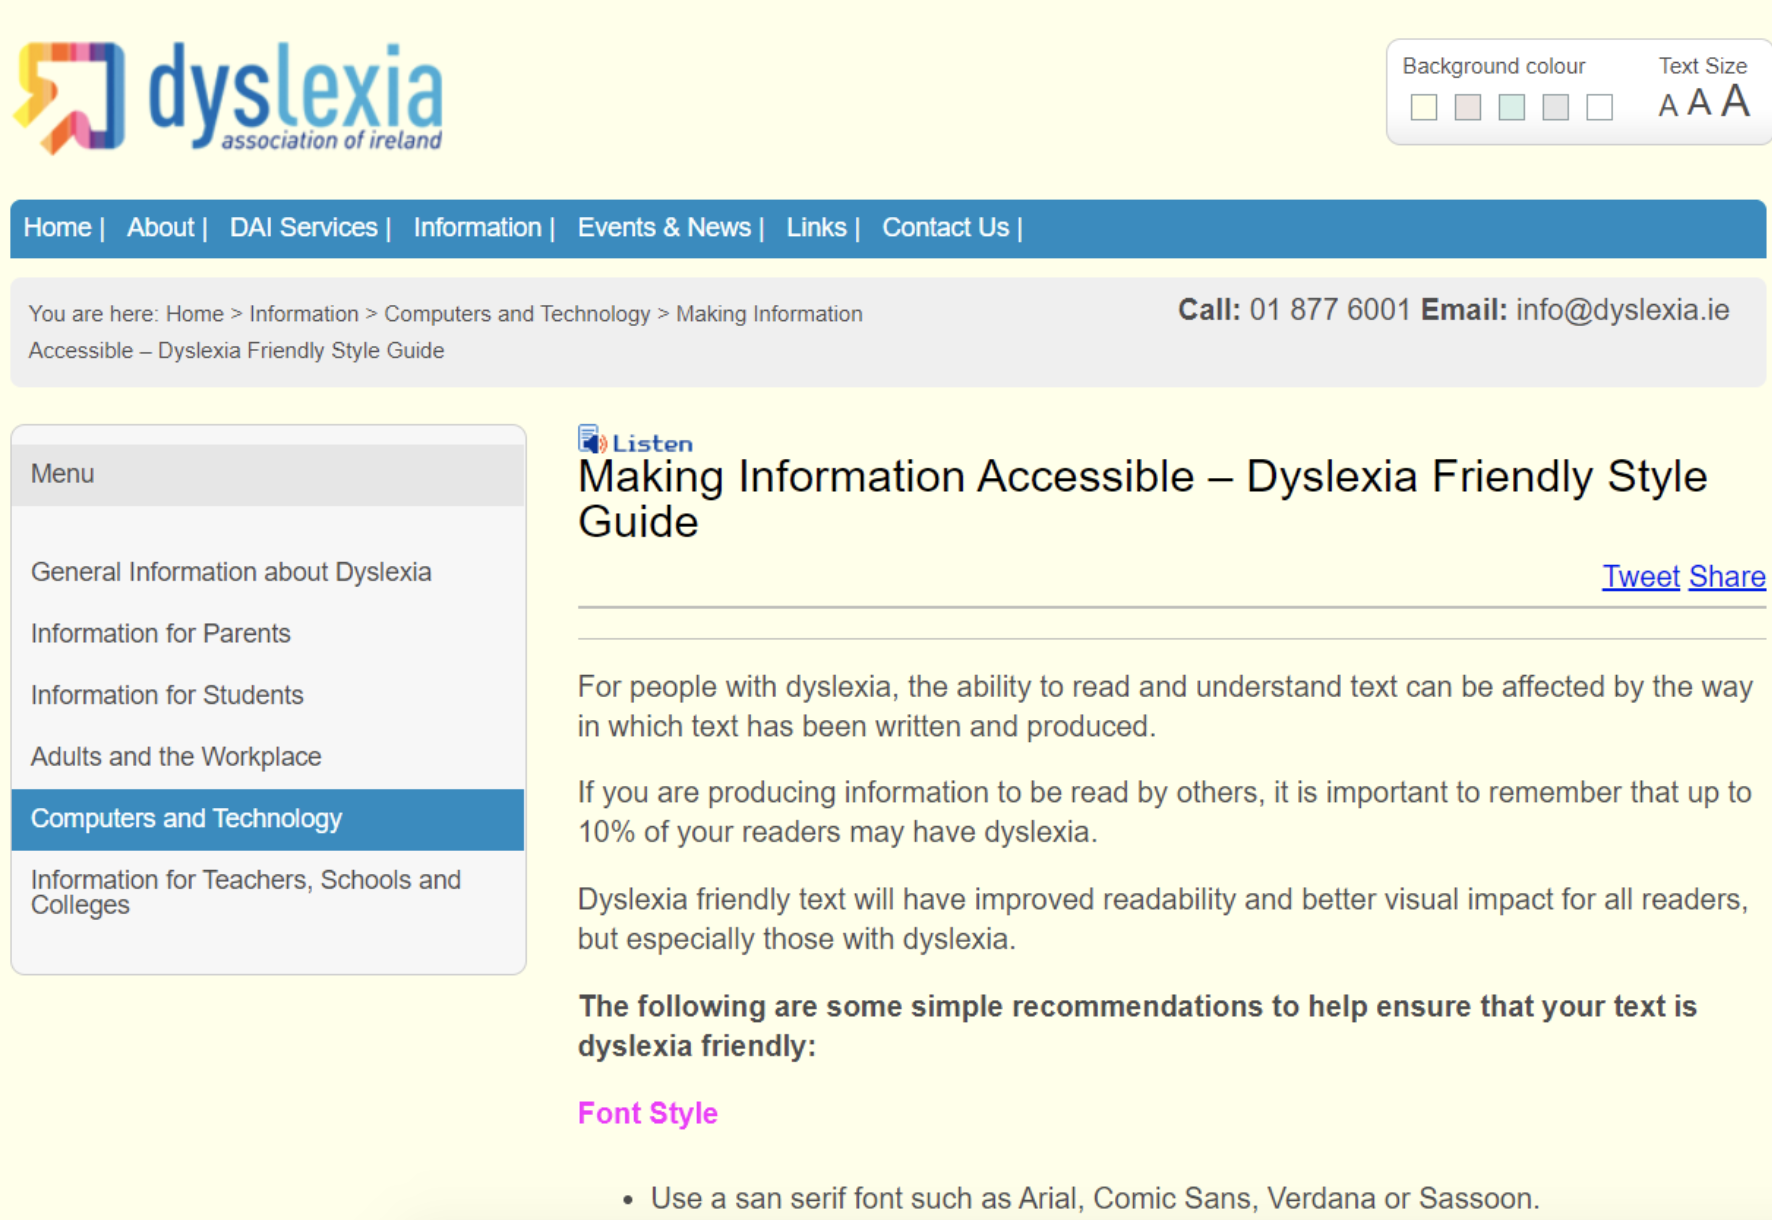 Dyslexia Association of Ireland website with pale yellow background